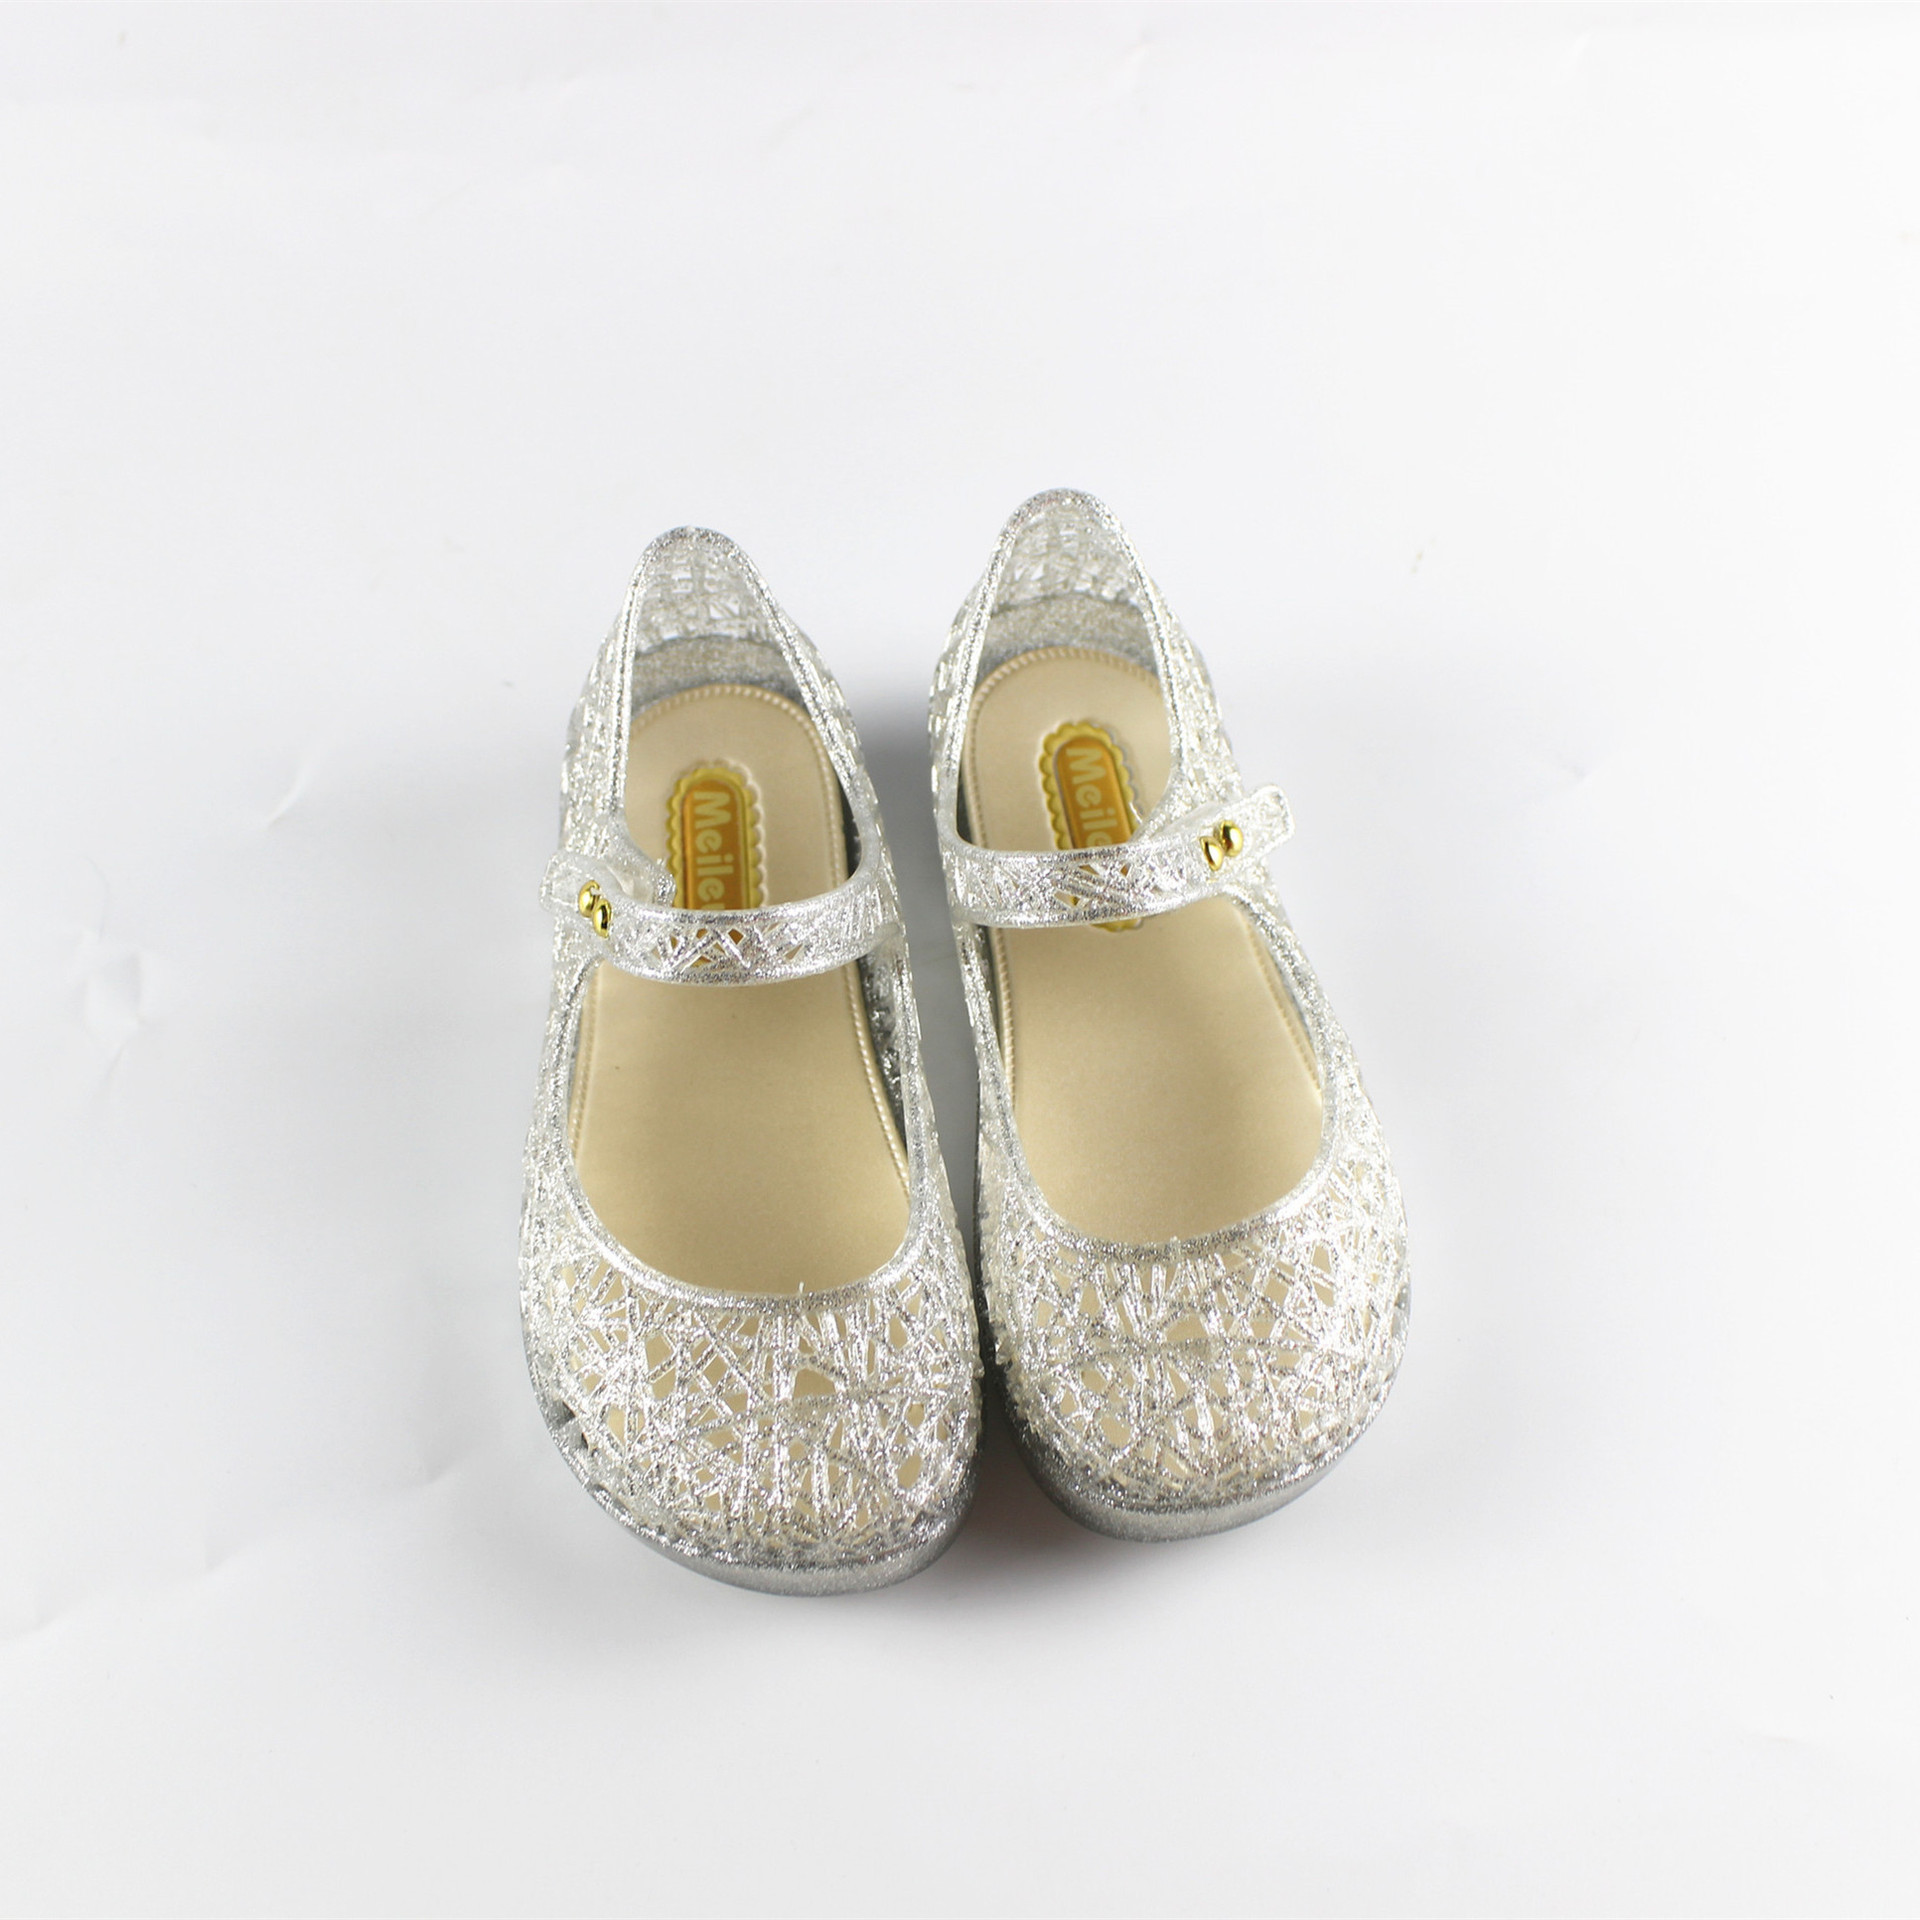 Mini Melissa Crystal Shoes 2017 New Children'S Mesh Hole Shoes Girls Sandals Jelly Shoes Sandals Shoes For Girls 15-18cm